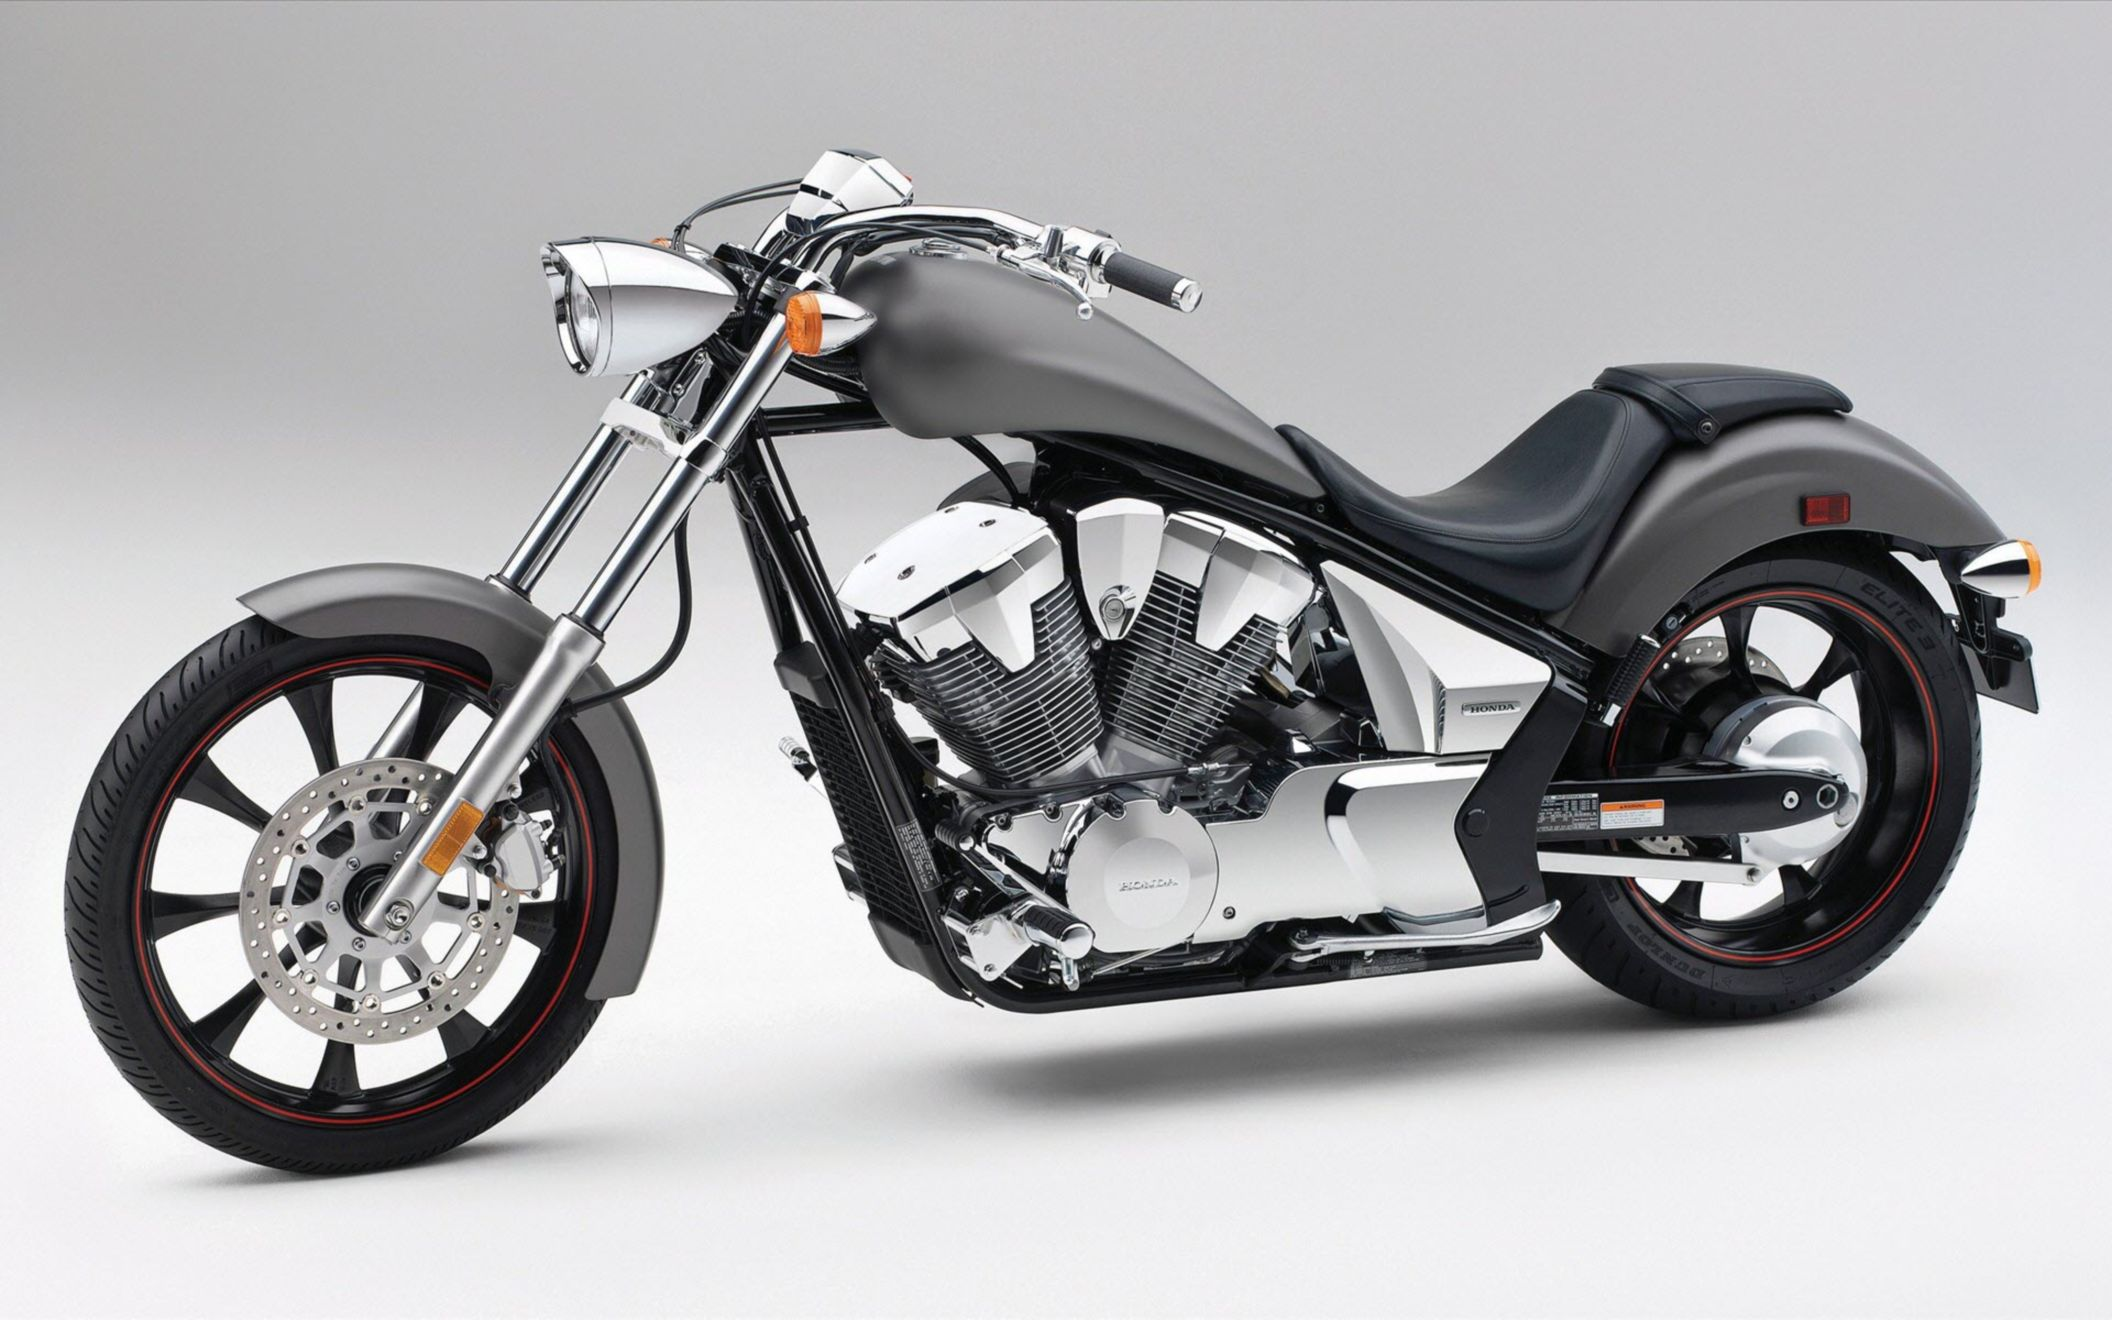 Download free HD 2010 Honda Fury Wide Wallpaper, image